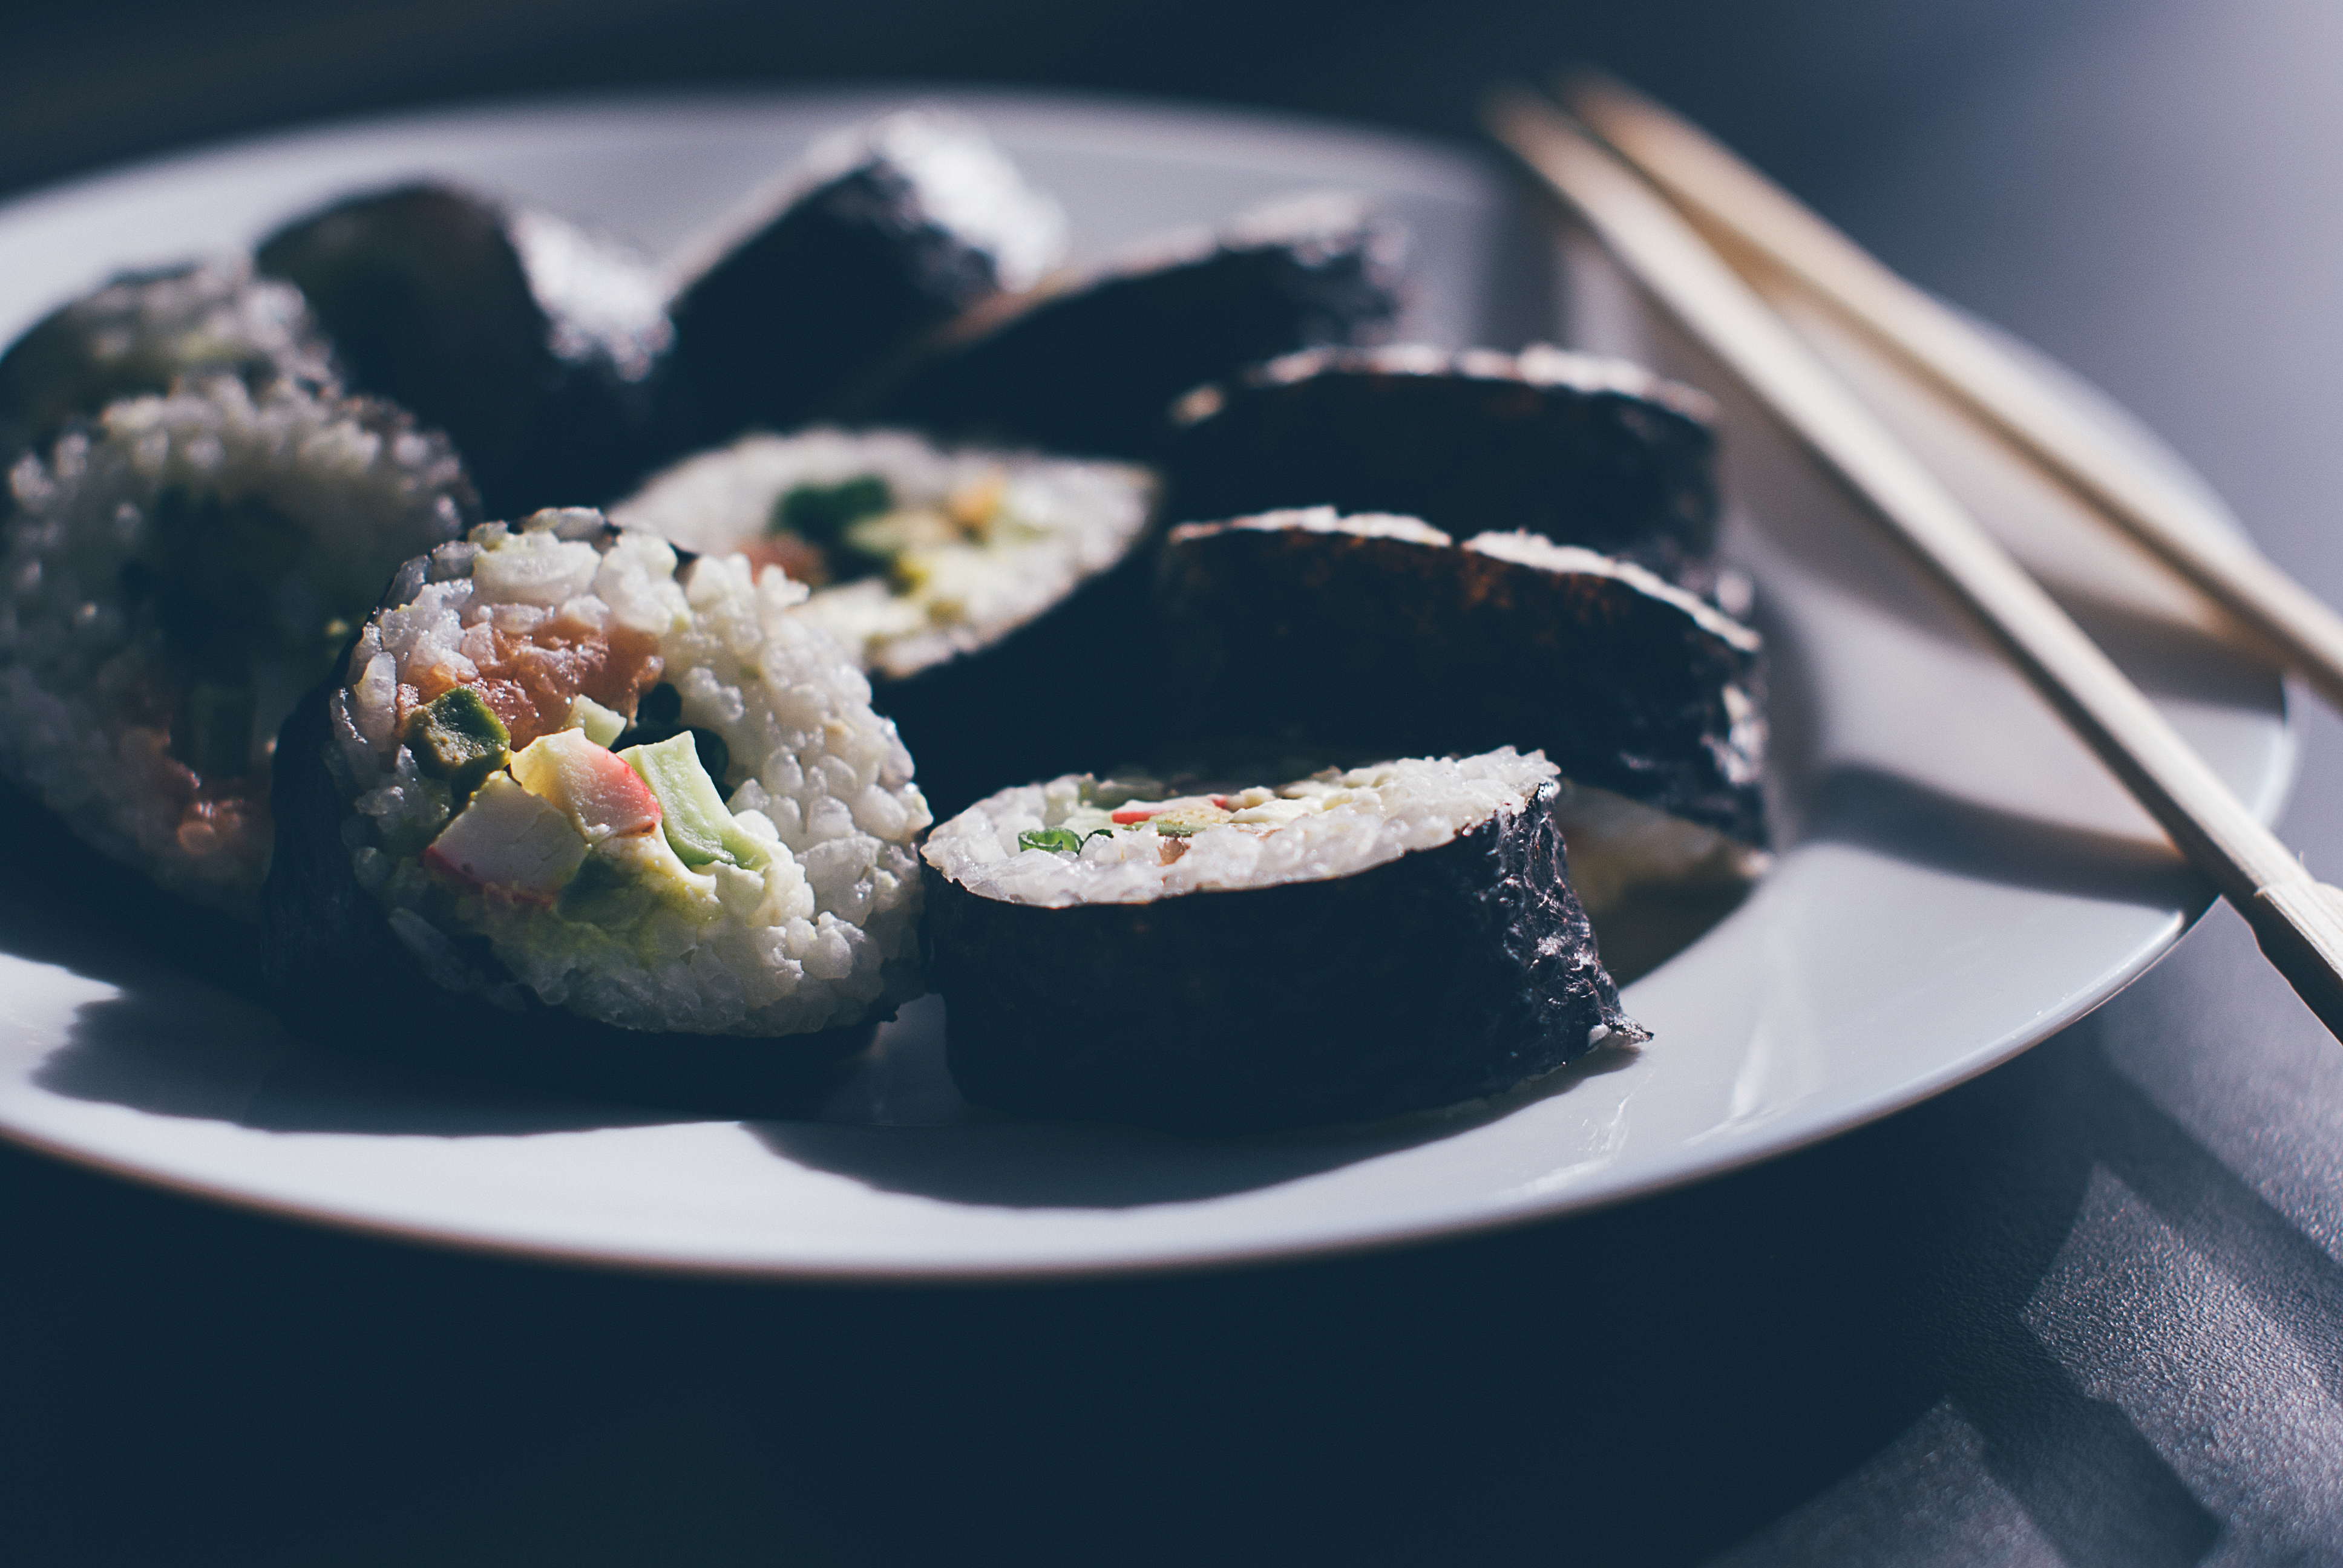 sushi-food-dinner-chopsticks-80841